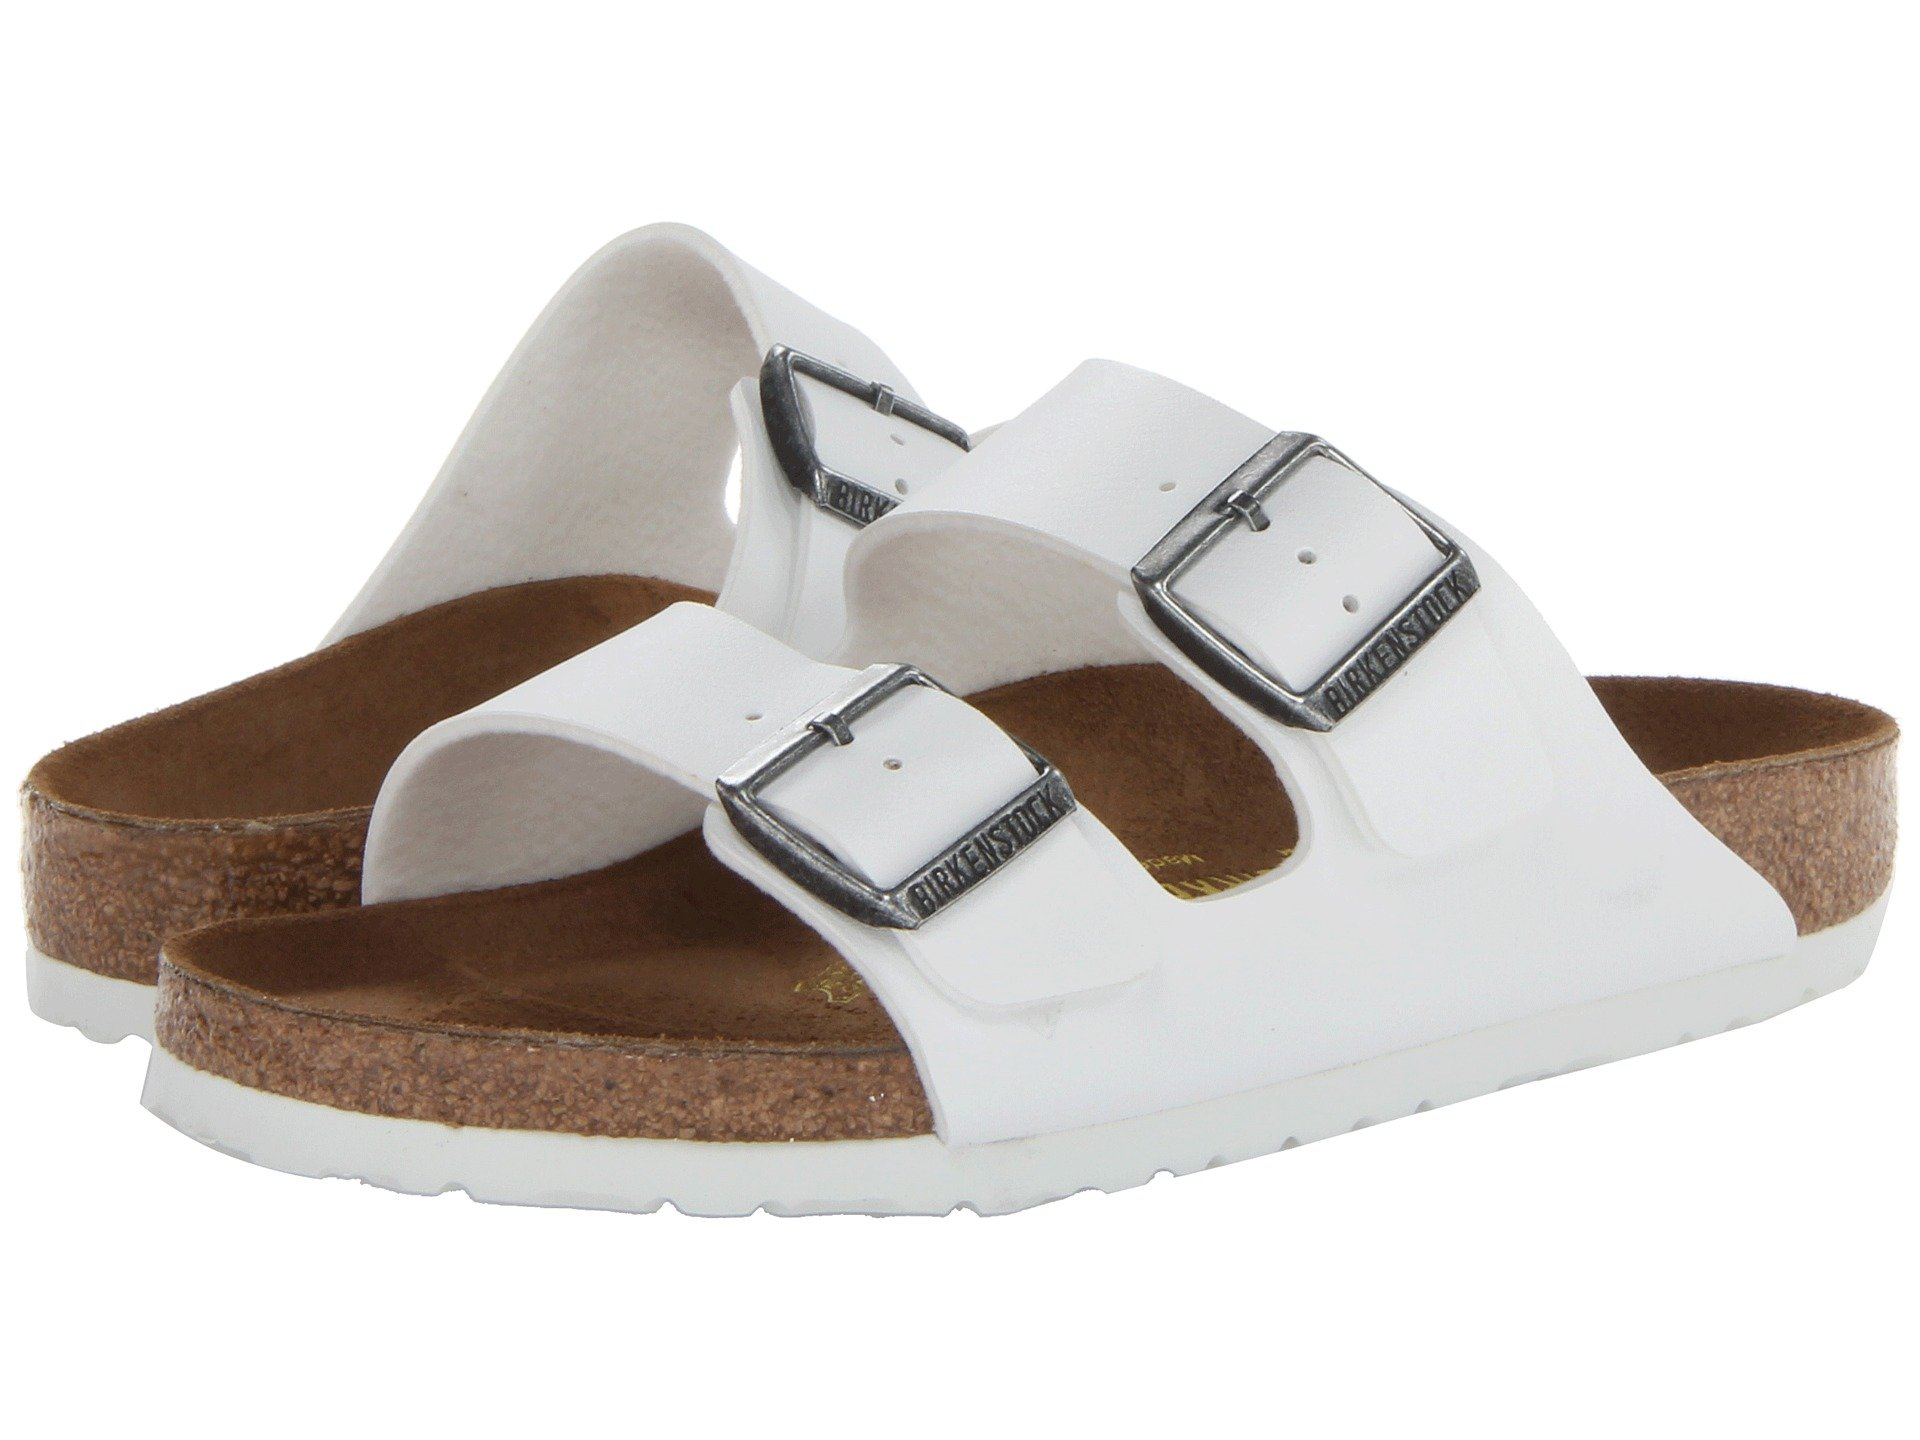 3bcd09698219 Women s Birkenstock Sandals + FREE SHIPPING